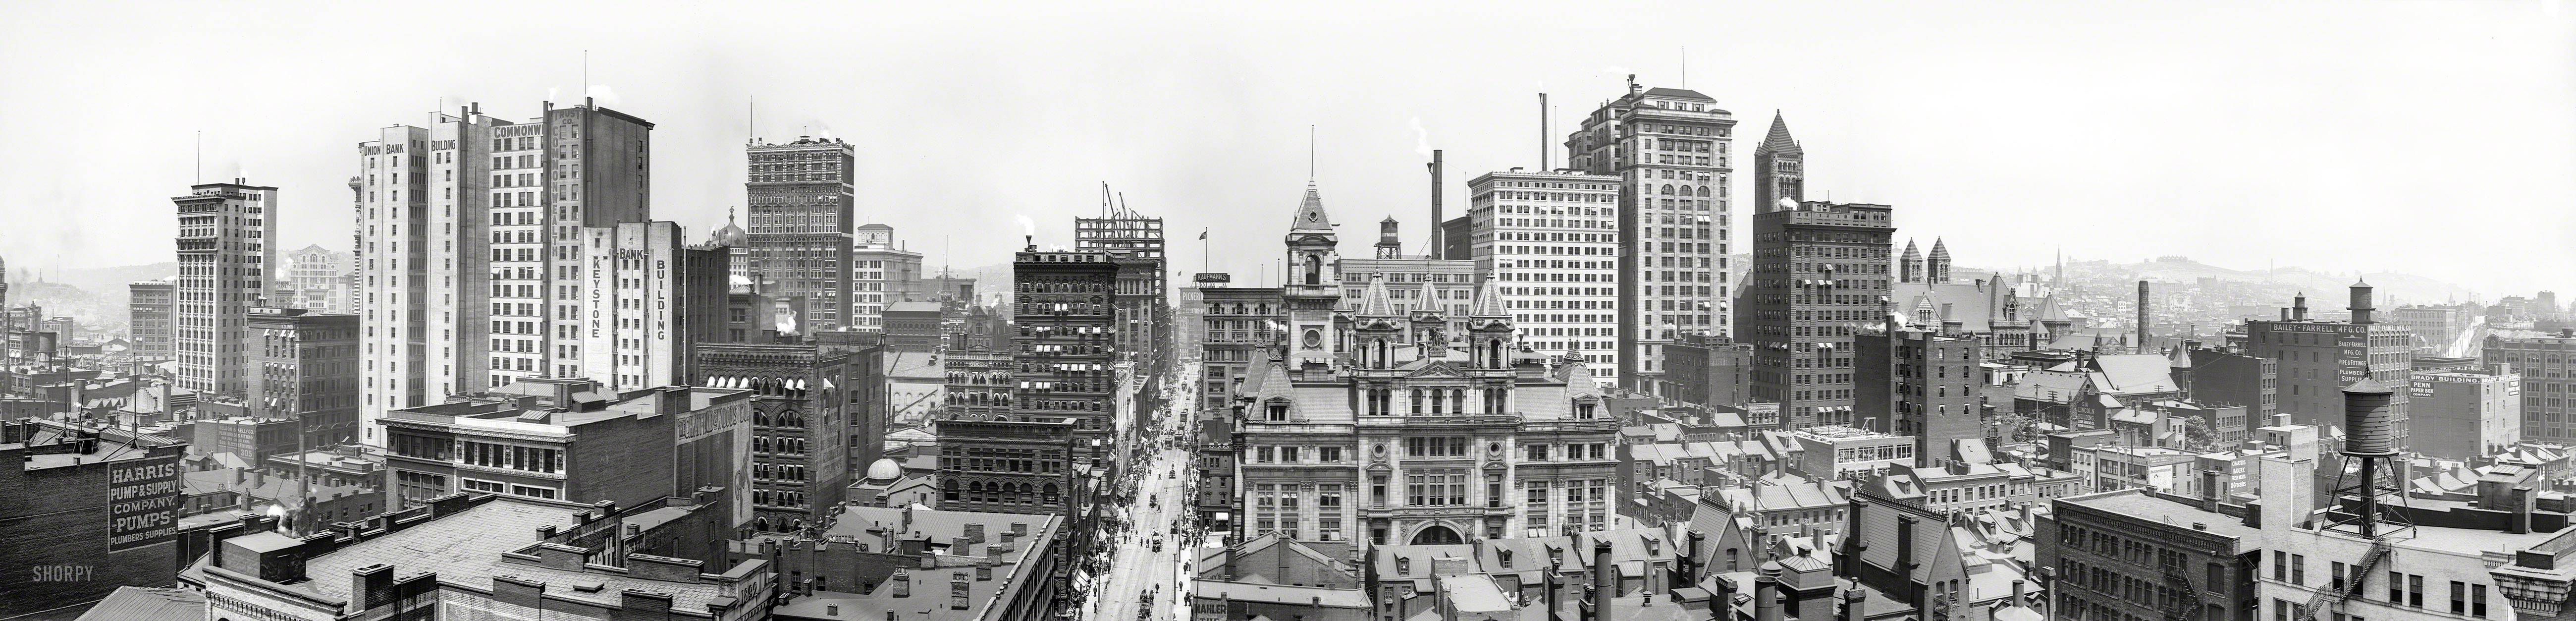 SHORPY-Pittsburgh_Panorama_1.jpg